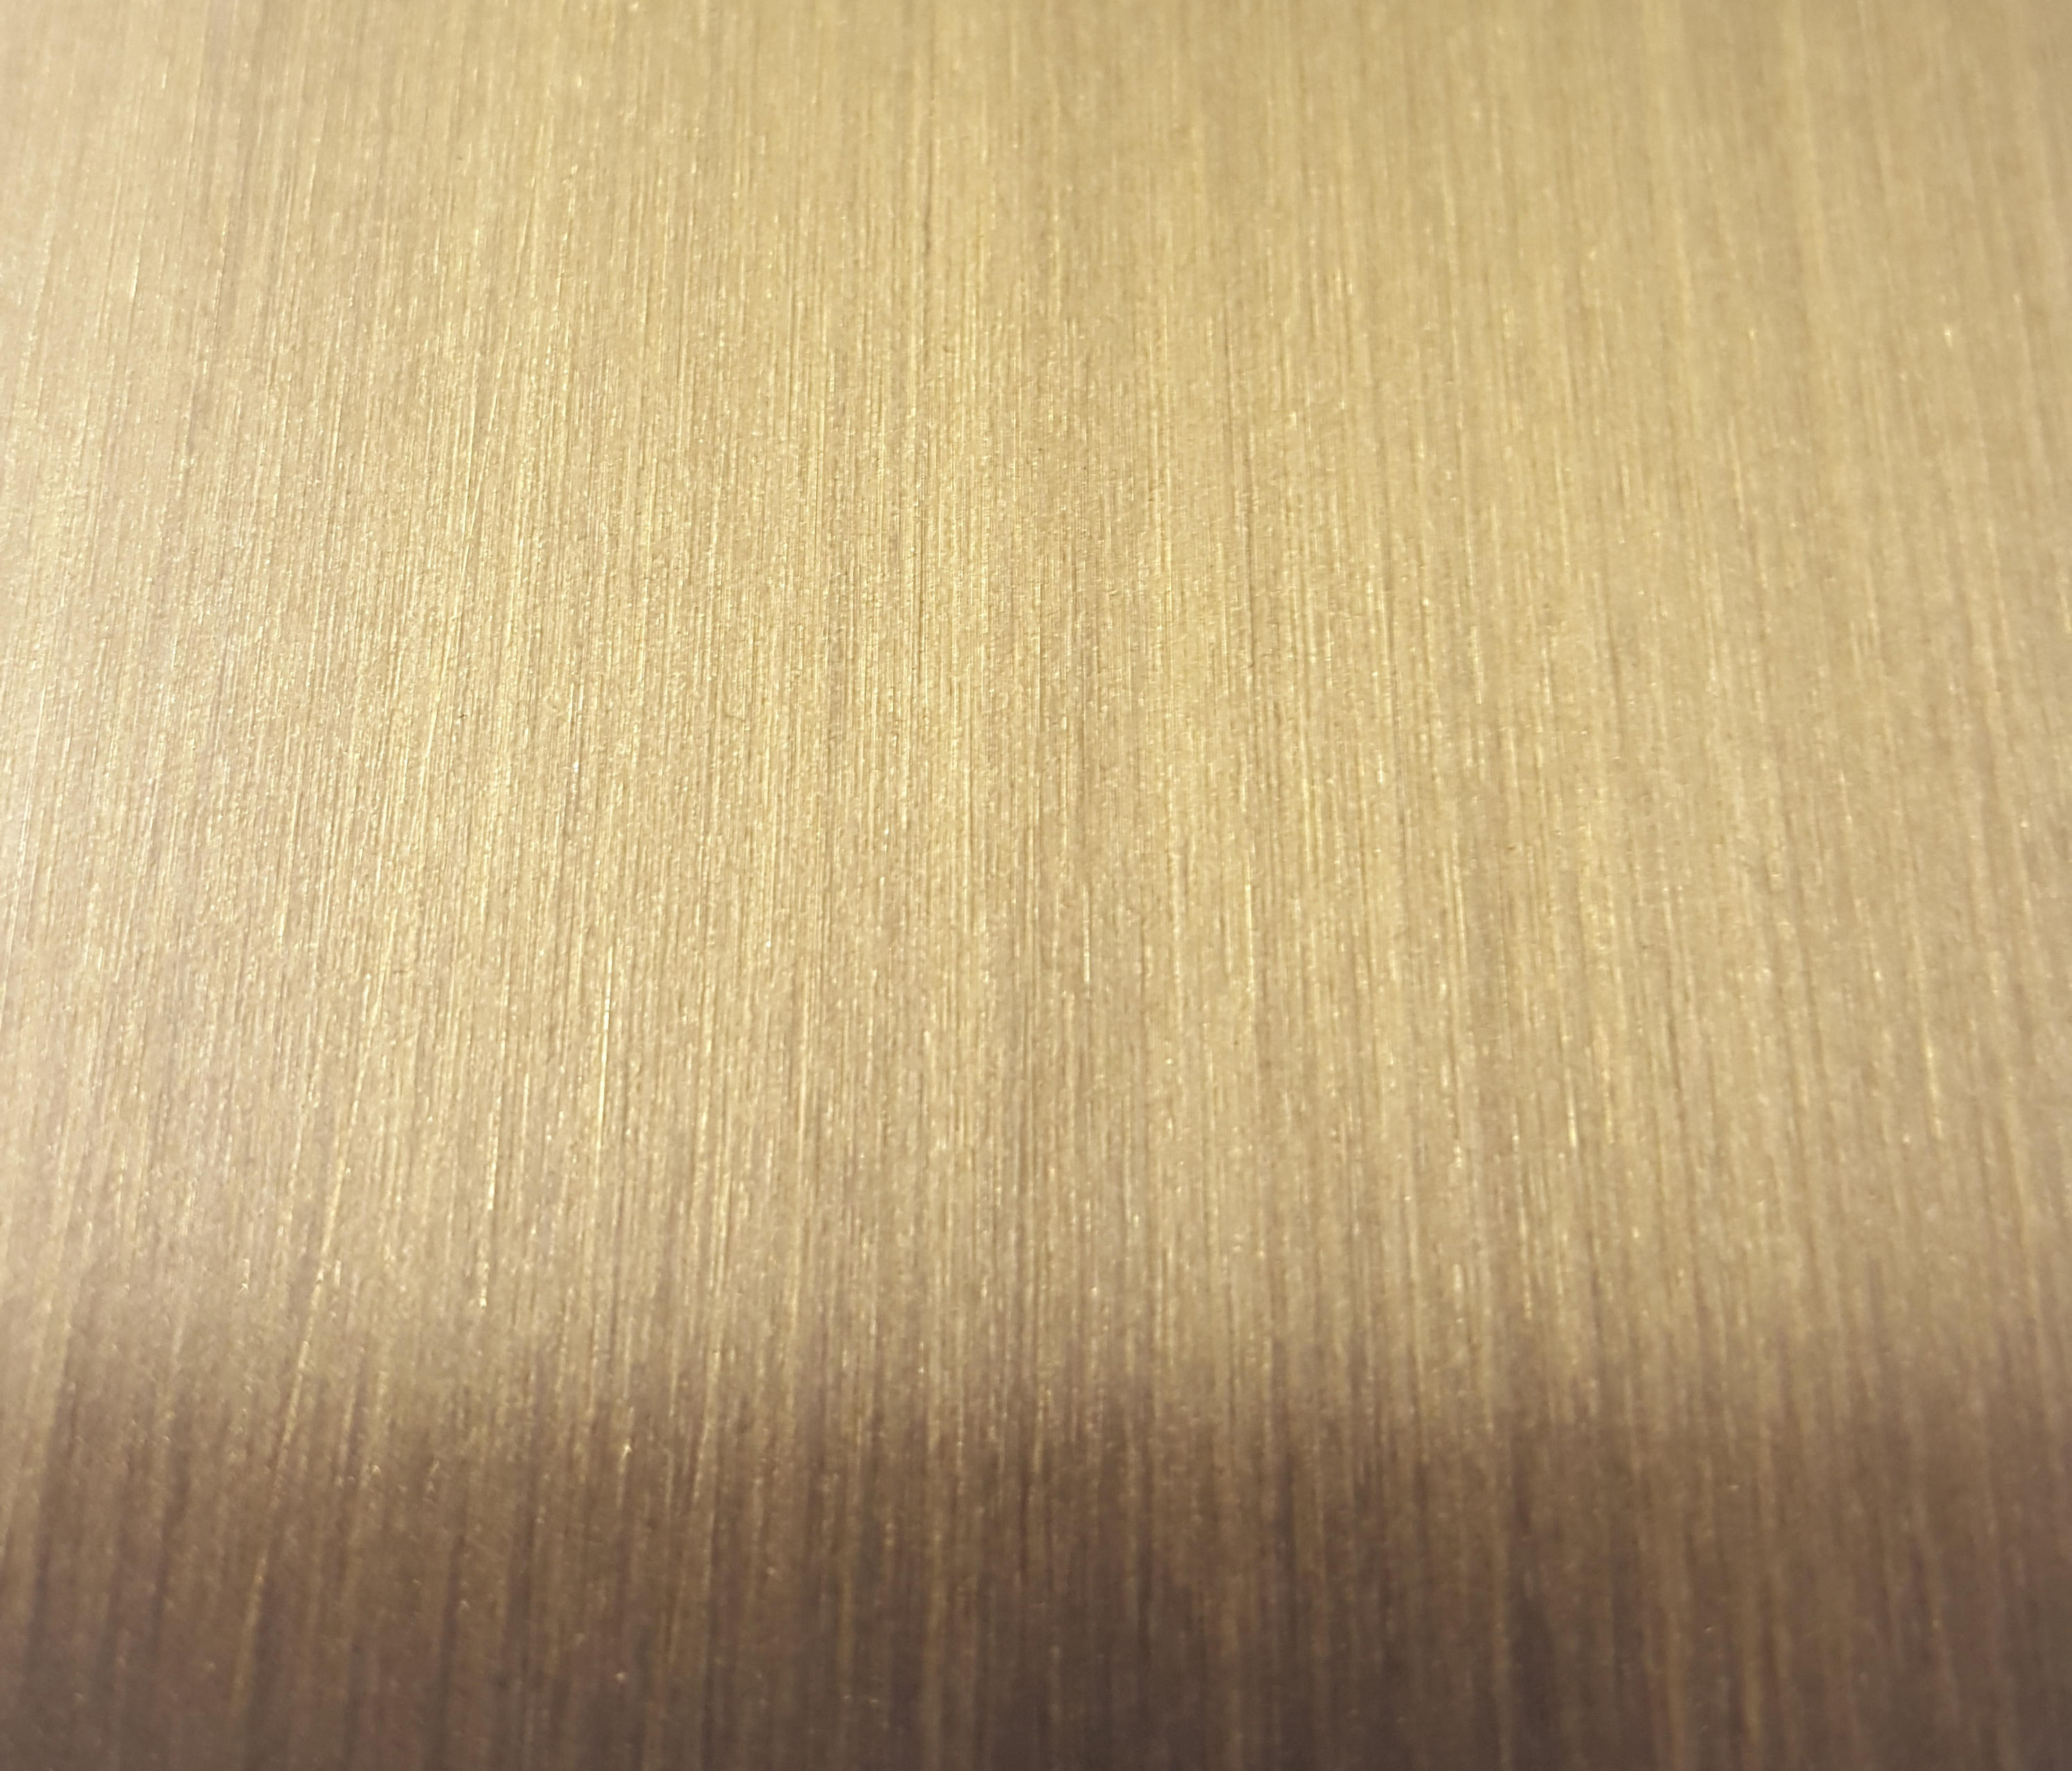 Finiture Brushed Brass Sheets From Ydf Architonic